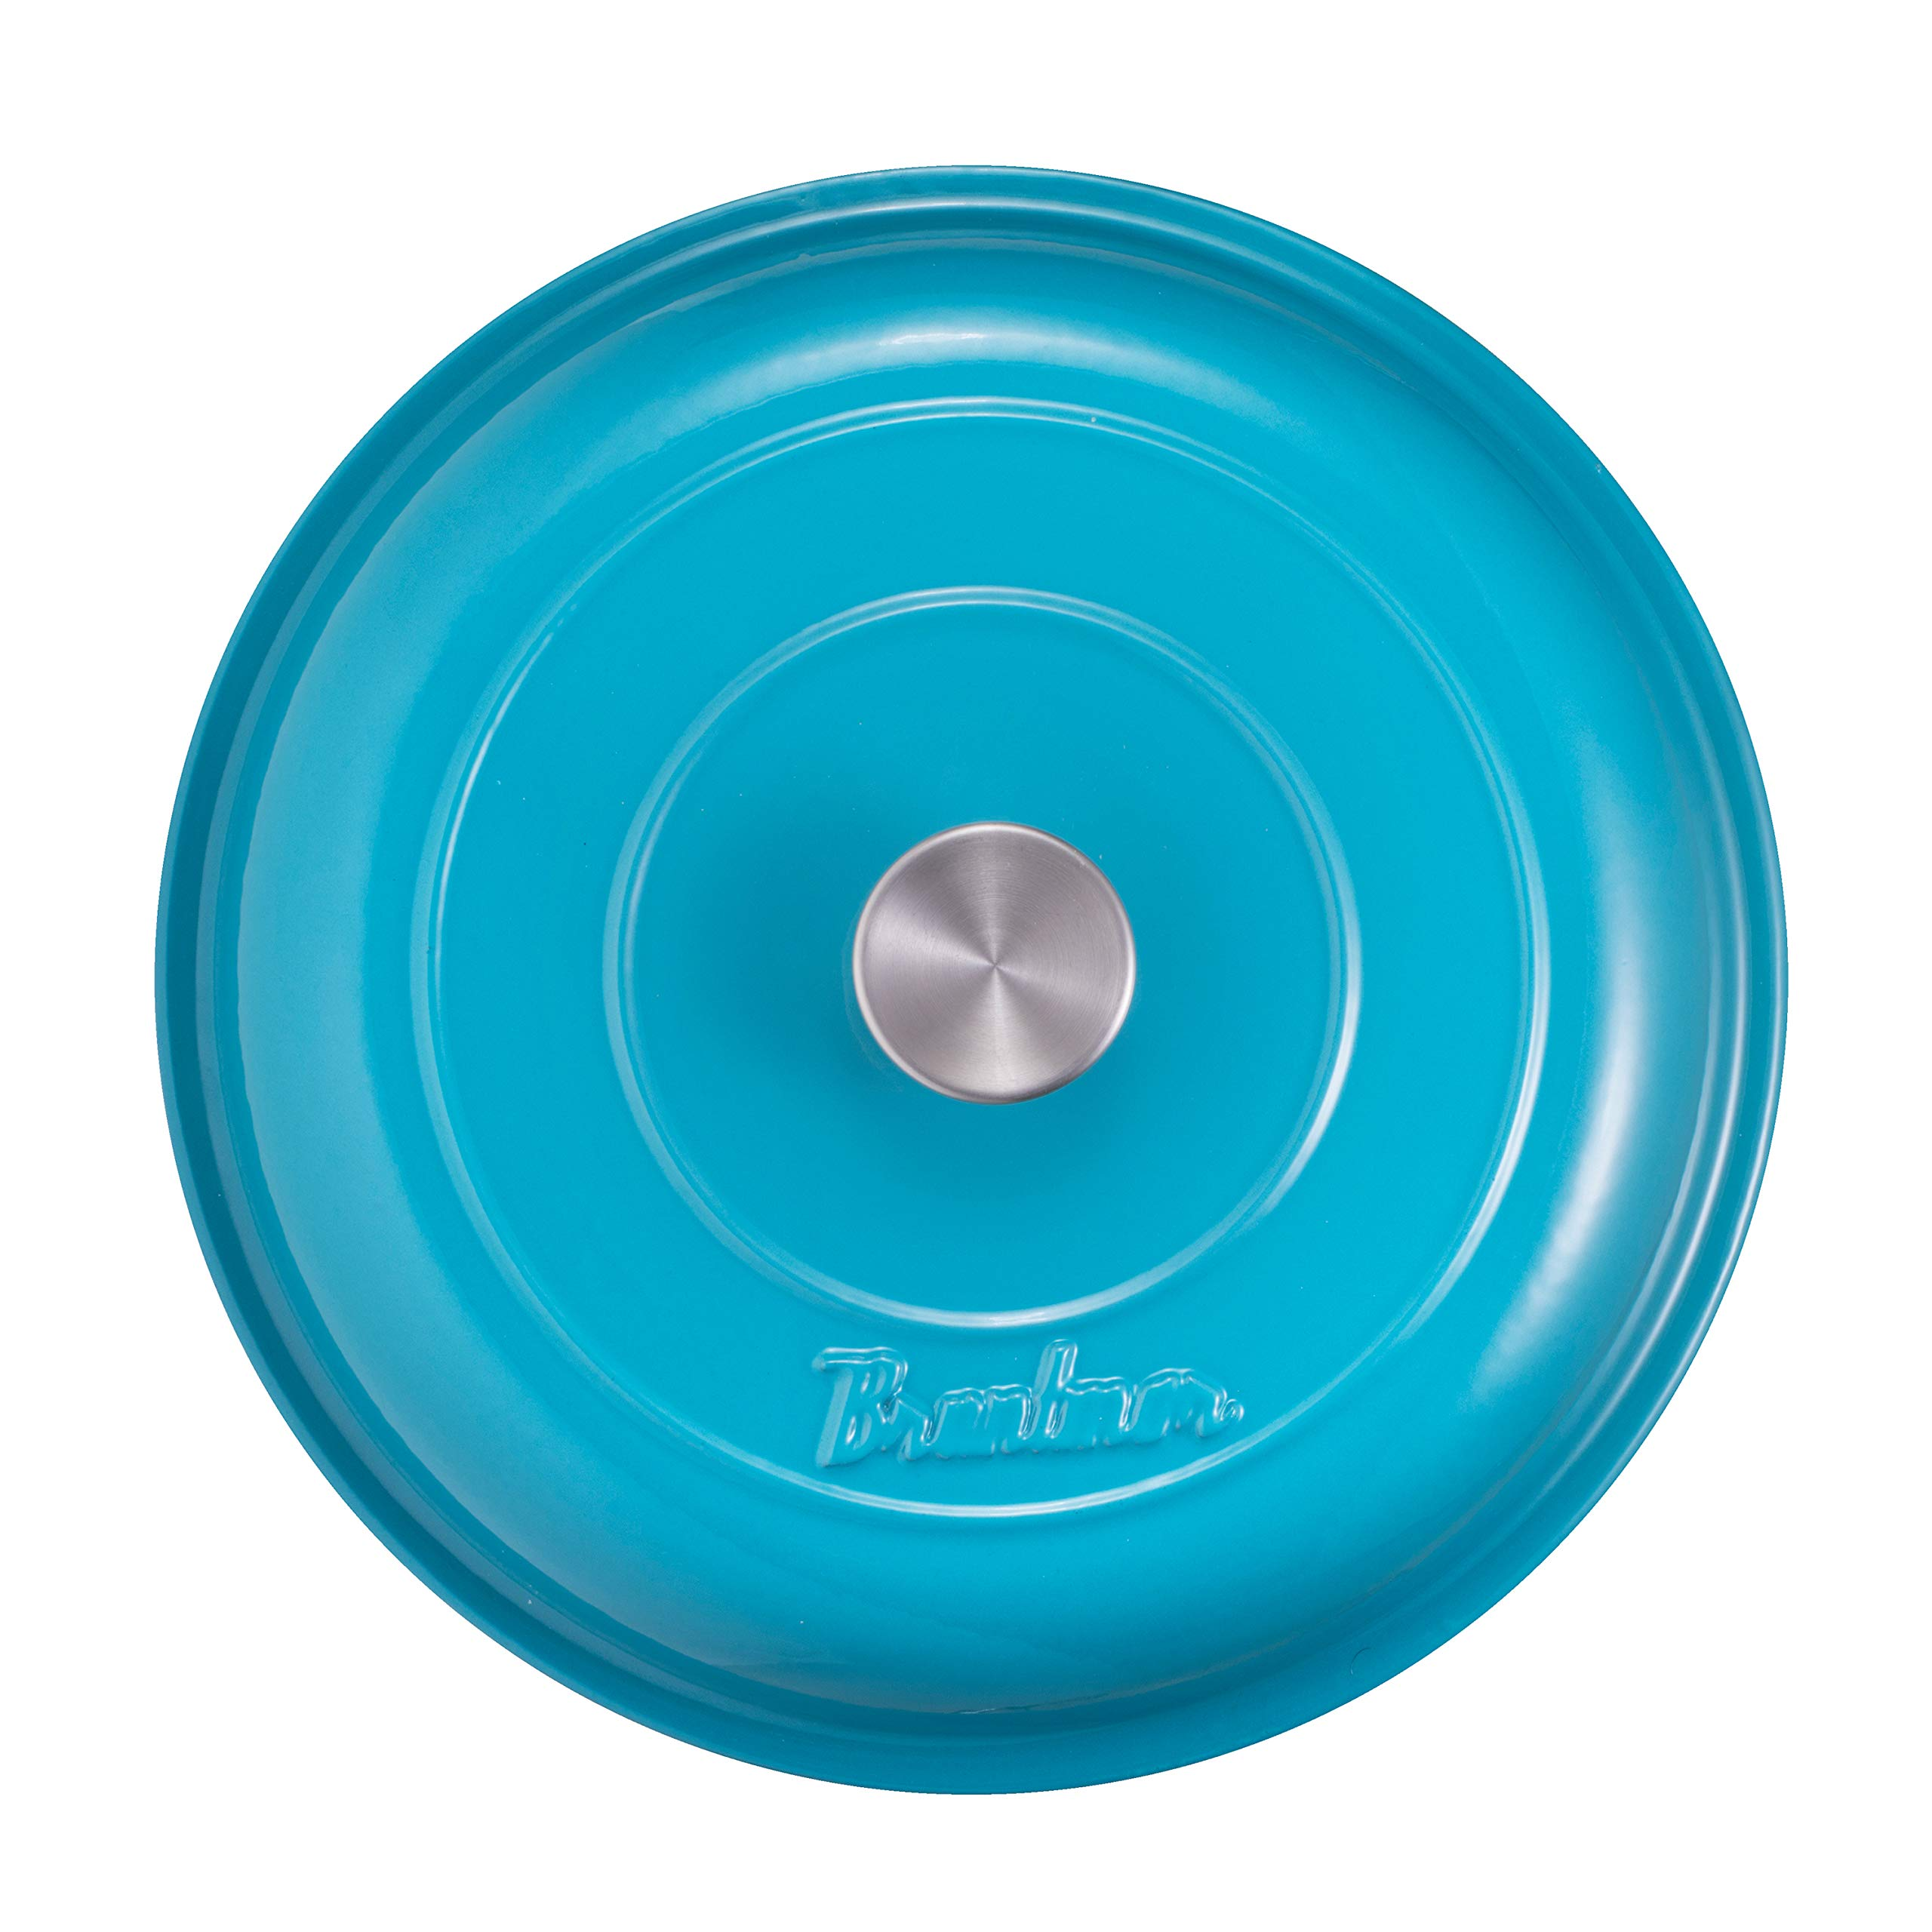 Enameled Cast Iron Shallow Casserole Braiser Pan with Cover, 3.8-Quart, Marine Blue by Bruntmor (Image #9)